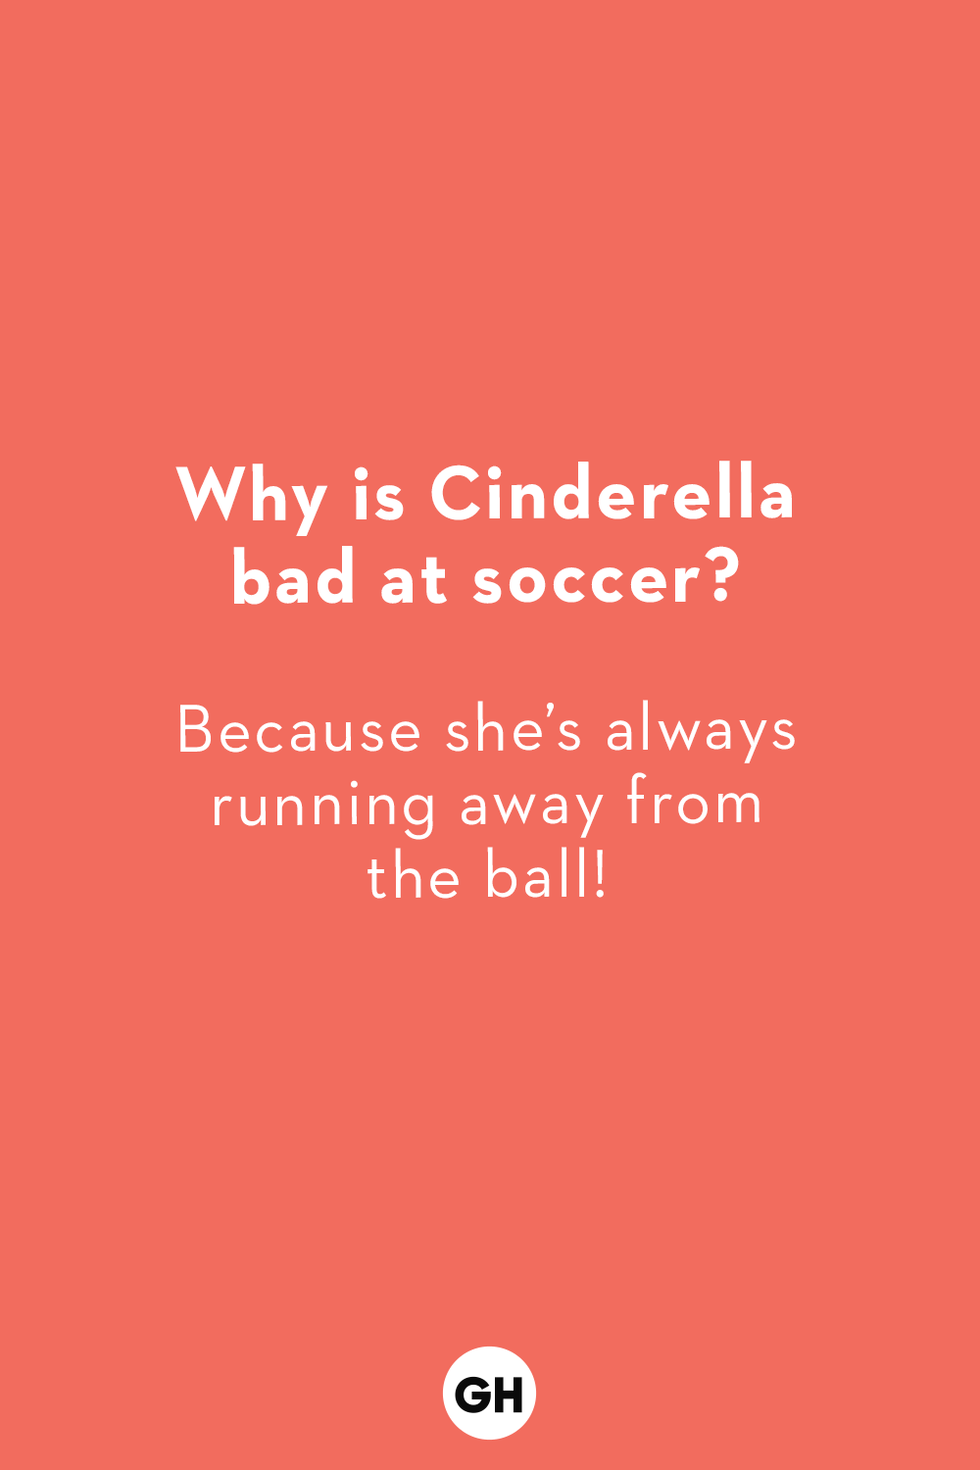 61 Easy Jokes to Teach Your Kids (That Are Better Than the